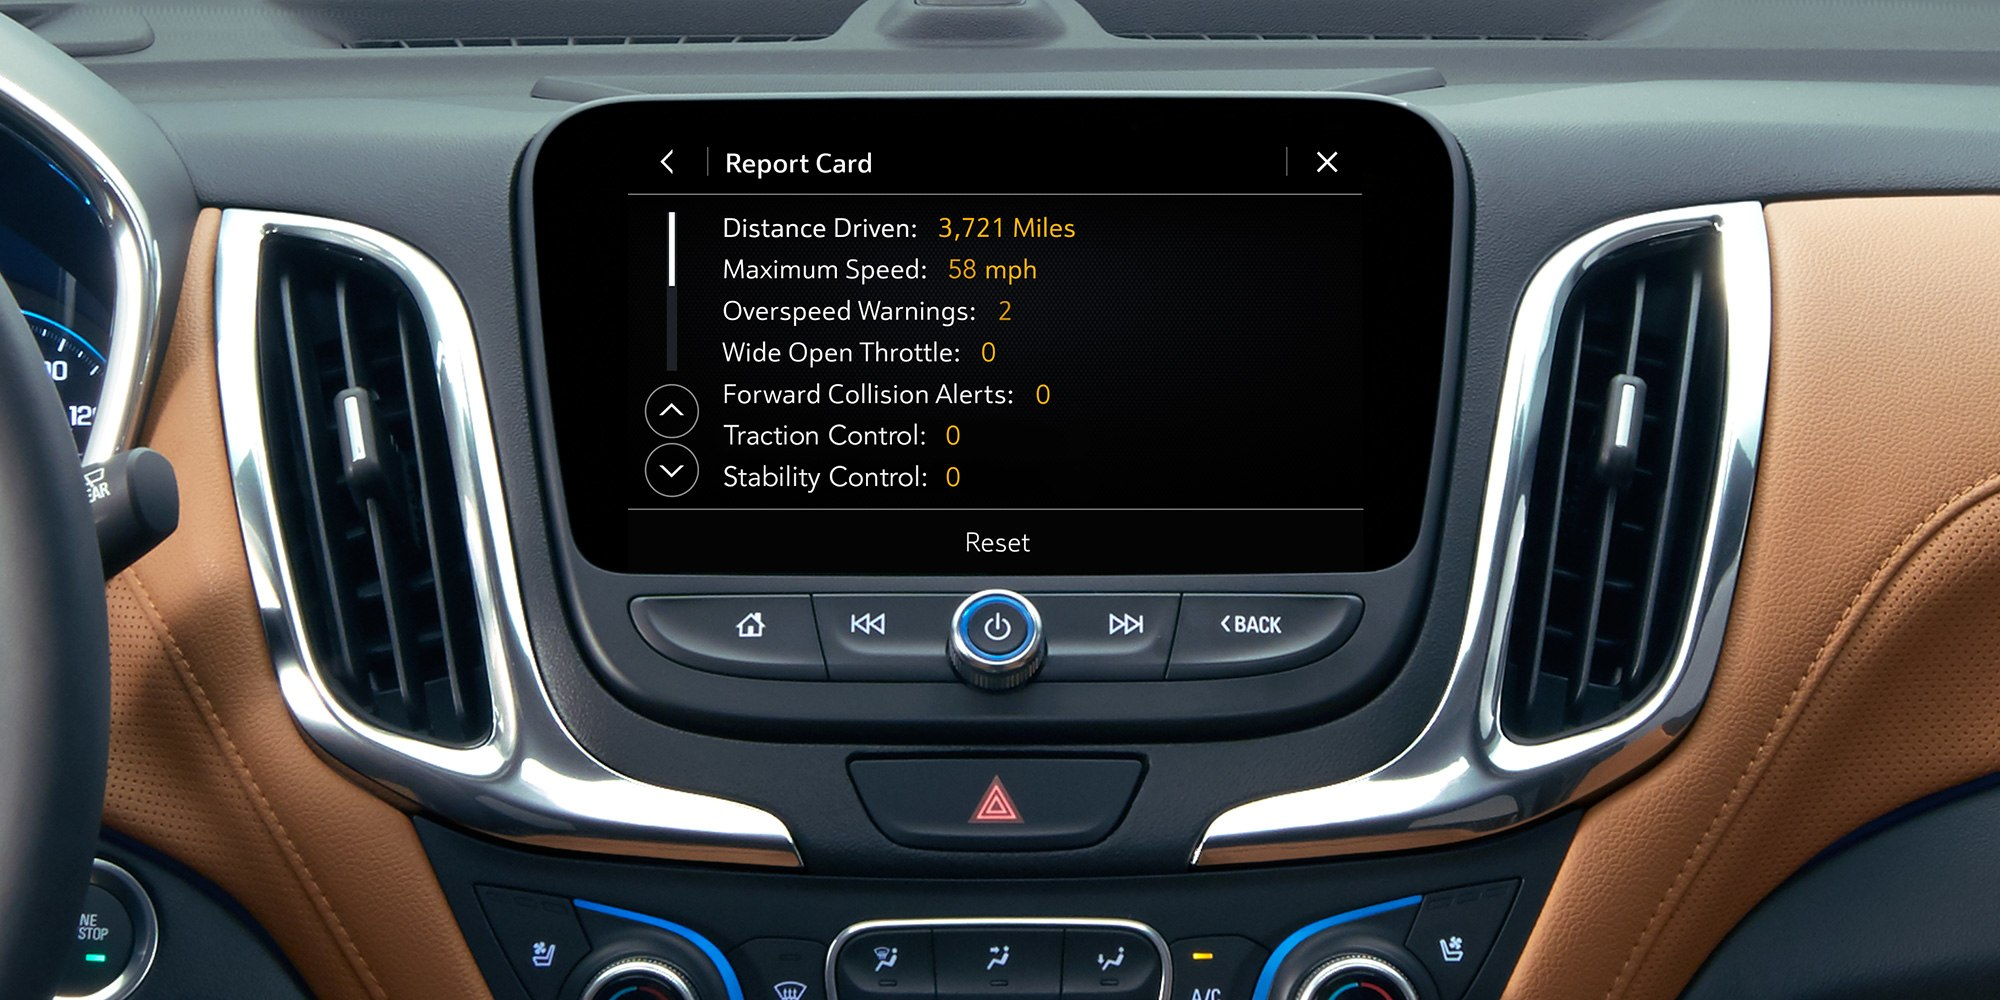 Manage High-Tech Features via the Equinox's Touchscreen